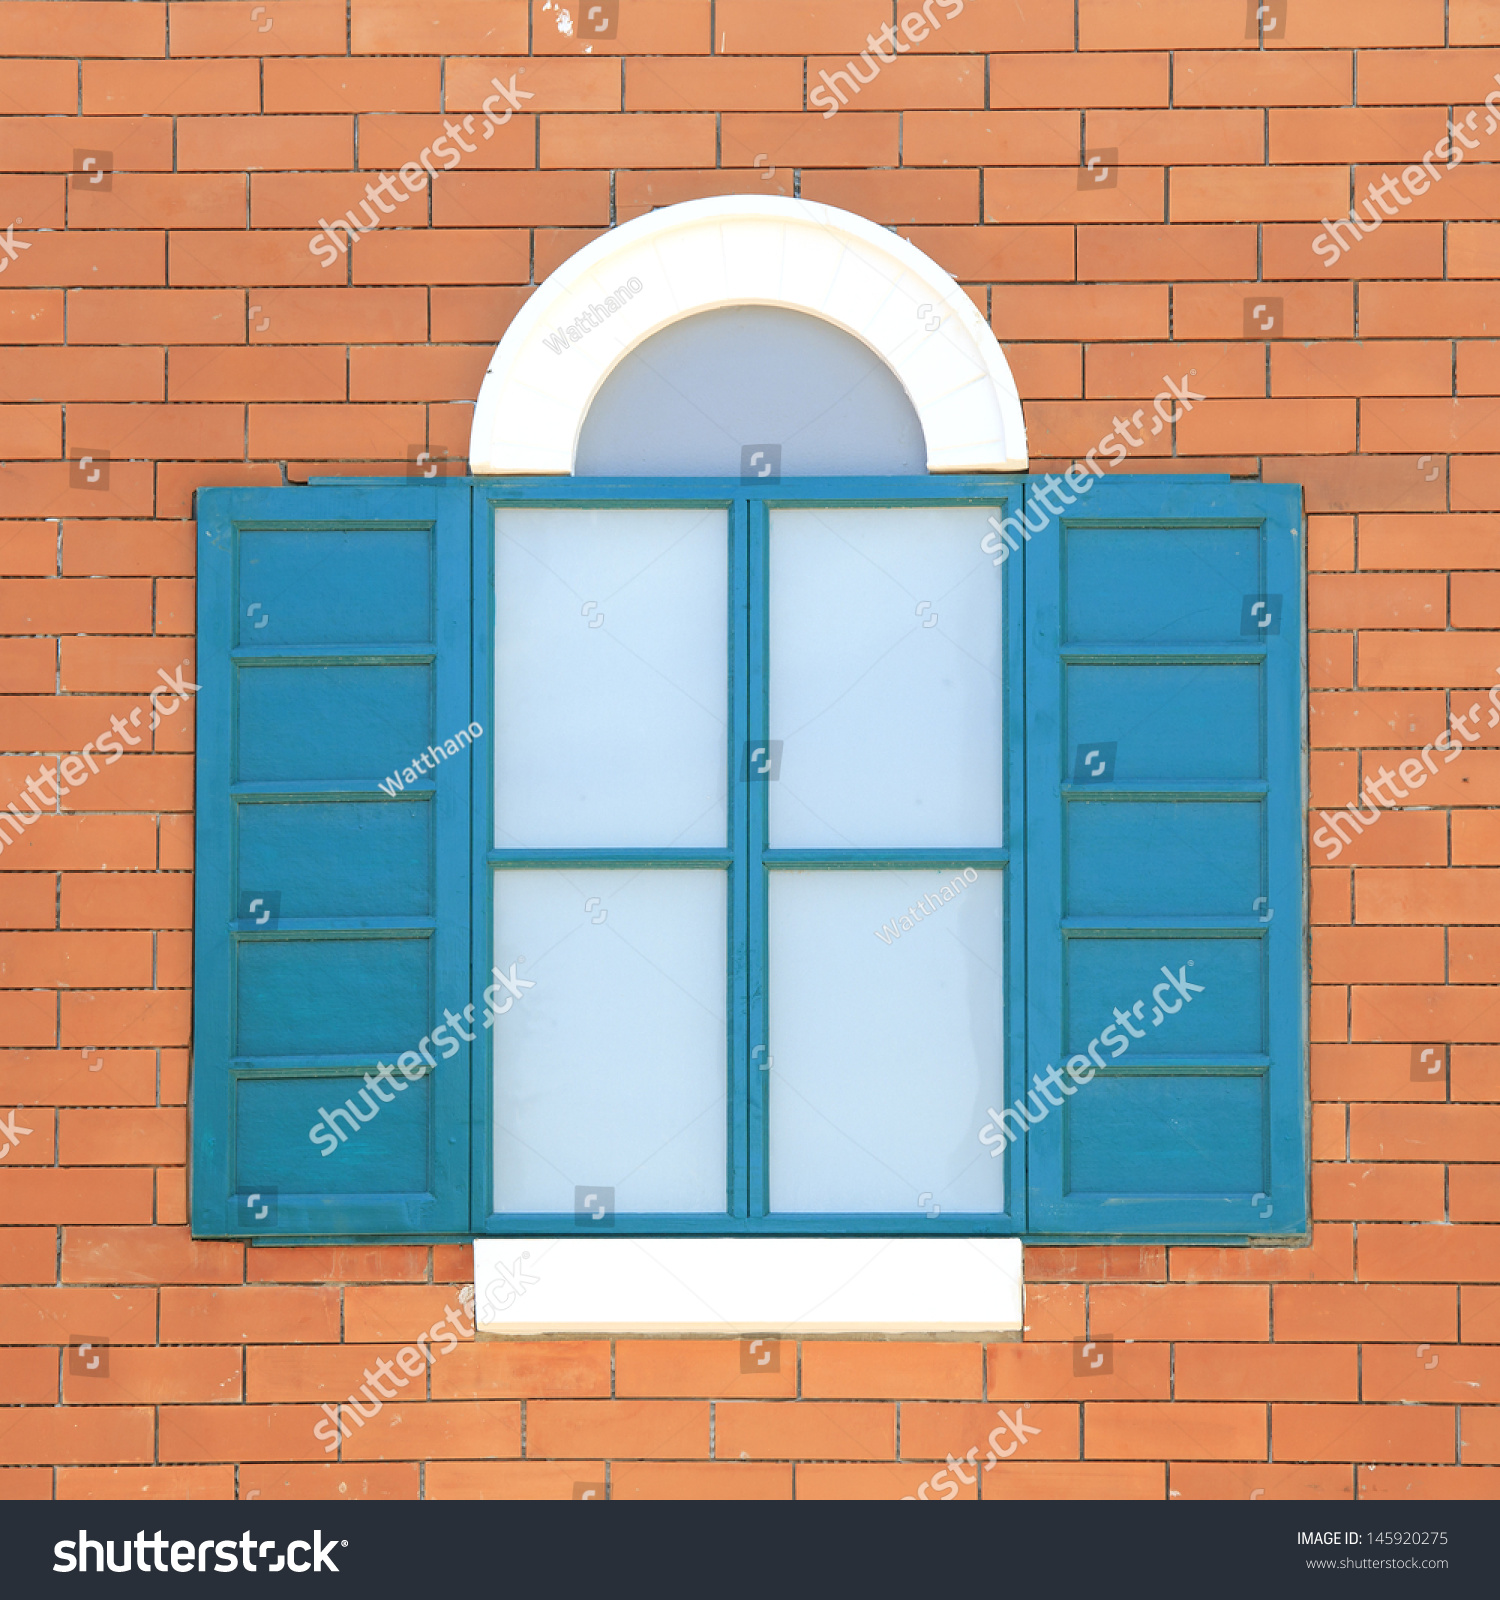 Vintage Windows On The Brick Wall